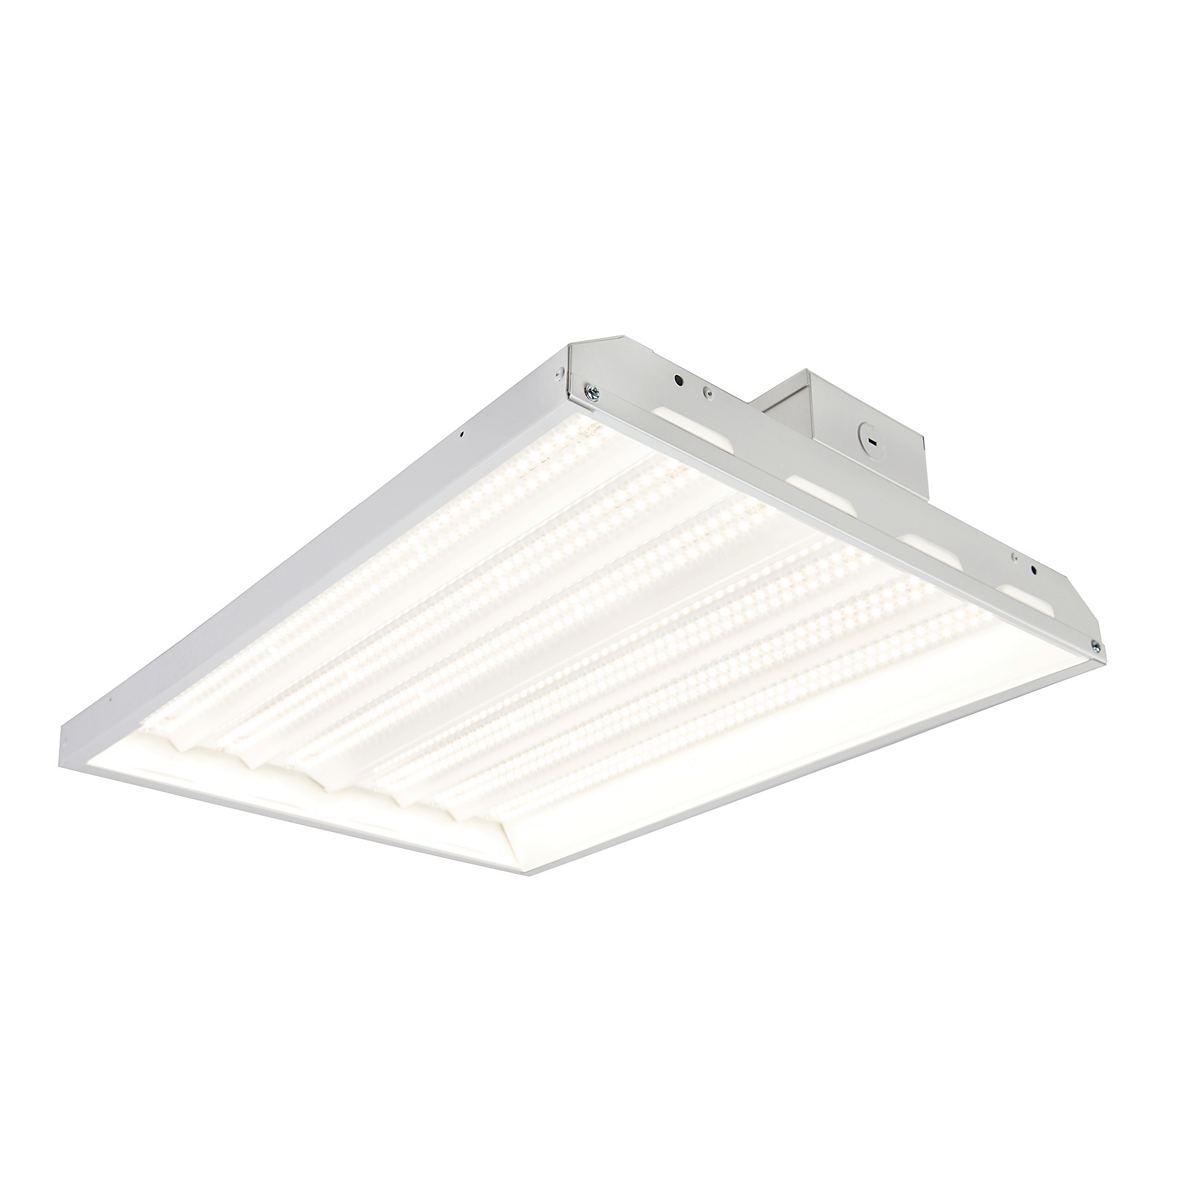 FCX LED High Bay